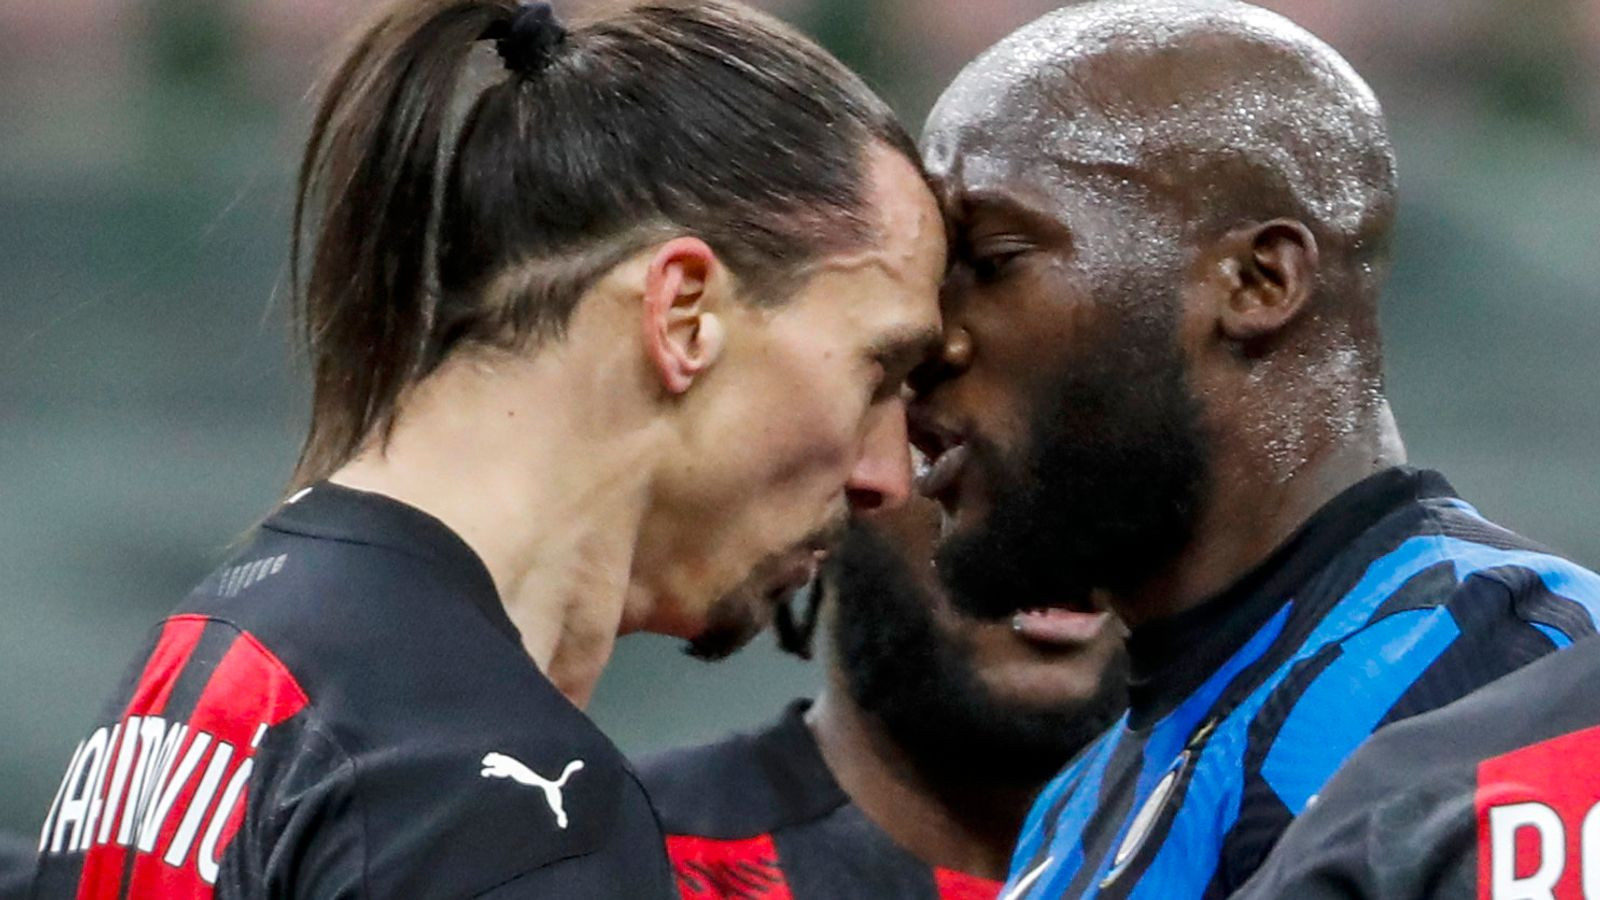 Update: Zlatan Ibrahimovic and Romelu Lukaku get match ban after heated confrontation in Milan derby